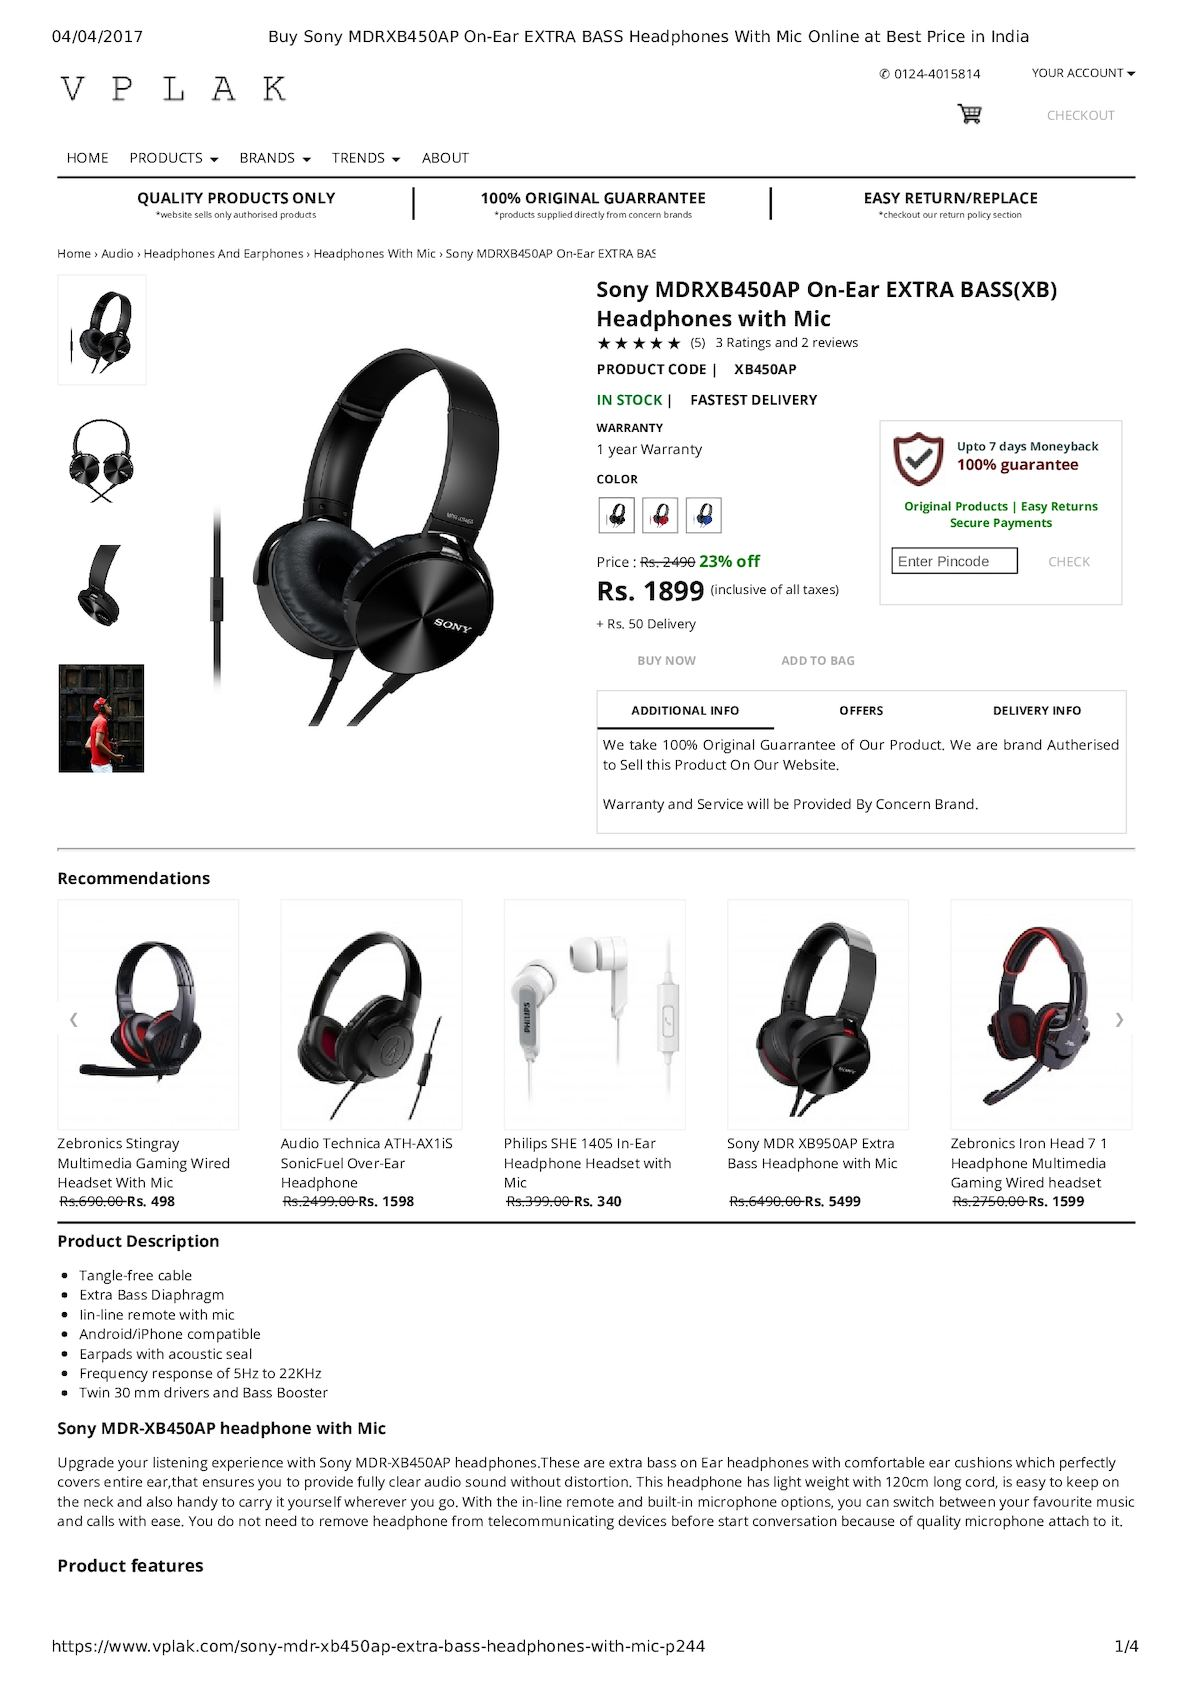 Calamo Buy Sony Mdrxb450ap On Ear Extra Bass Headphones With Mic Jgos17 Philips In Headphone She1405 Black Online At Best Price India